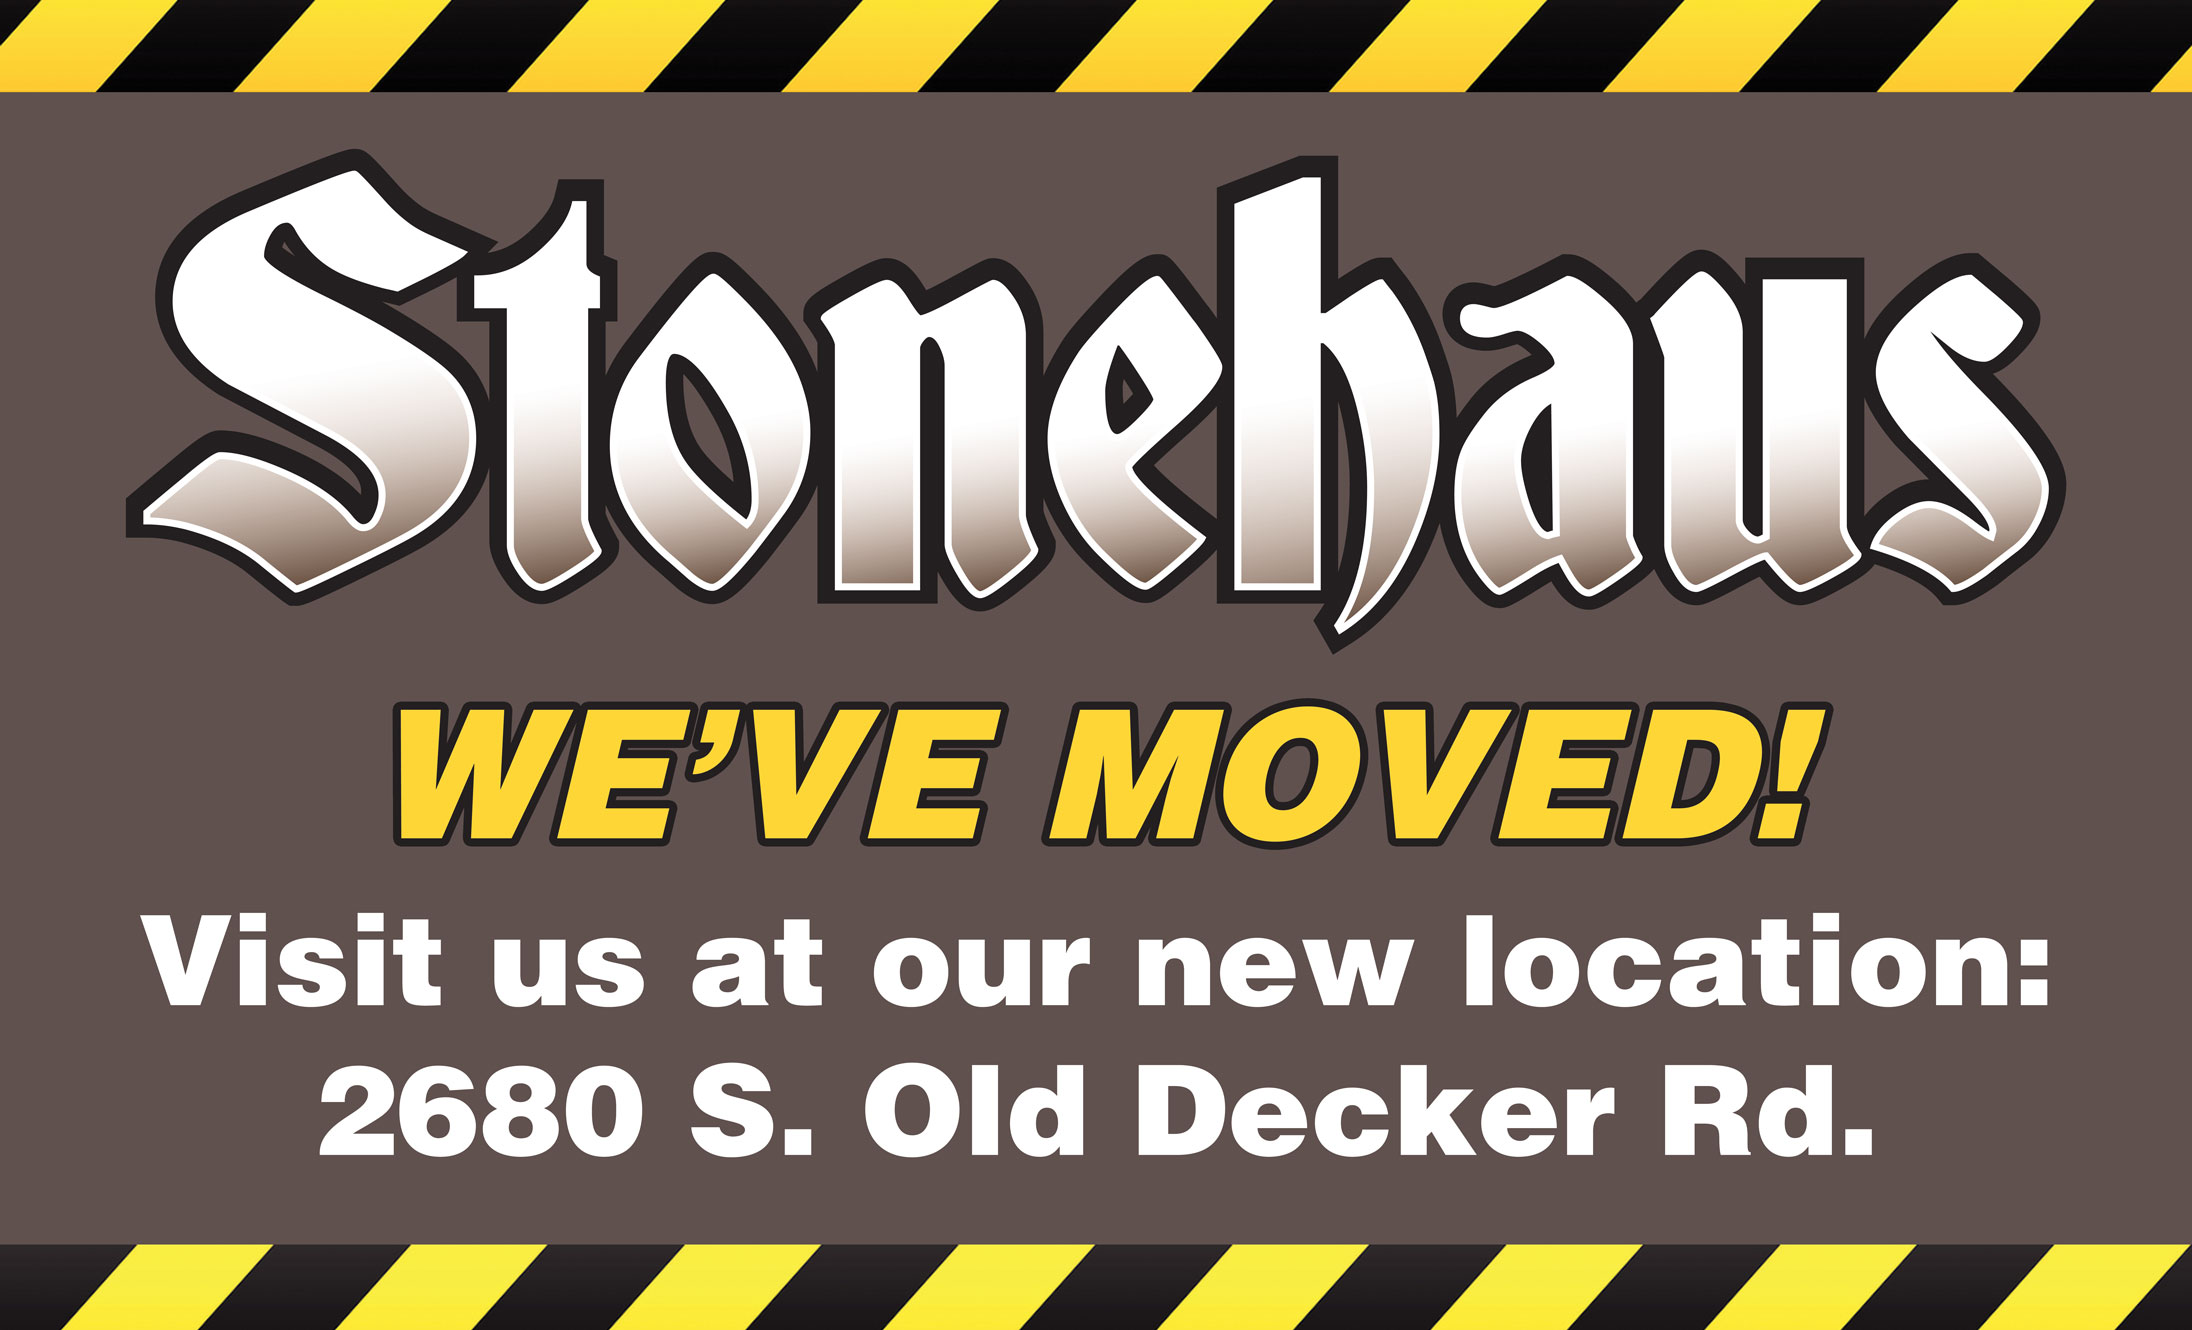 Stonehaus-weve-moved-sign-3x5